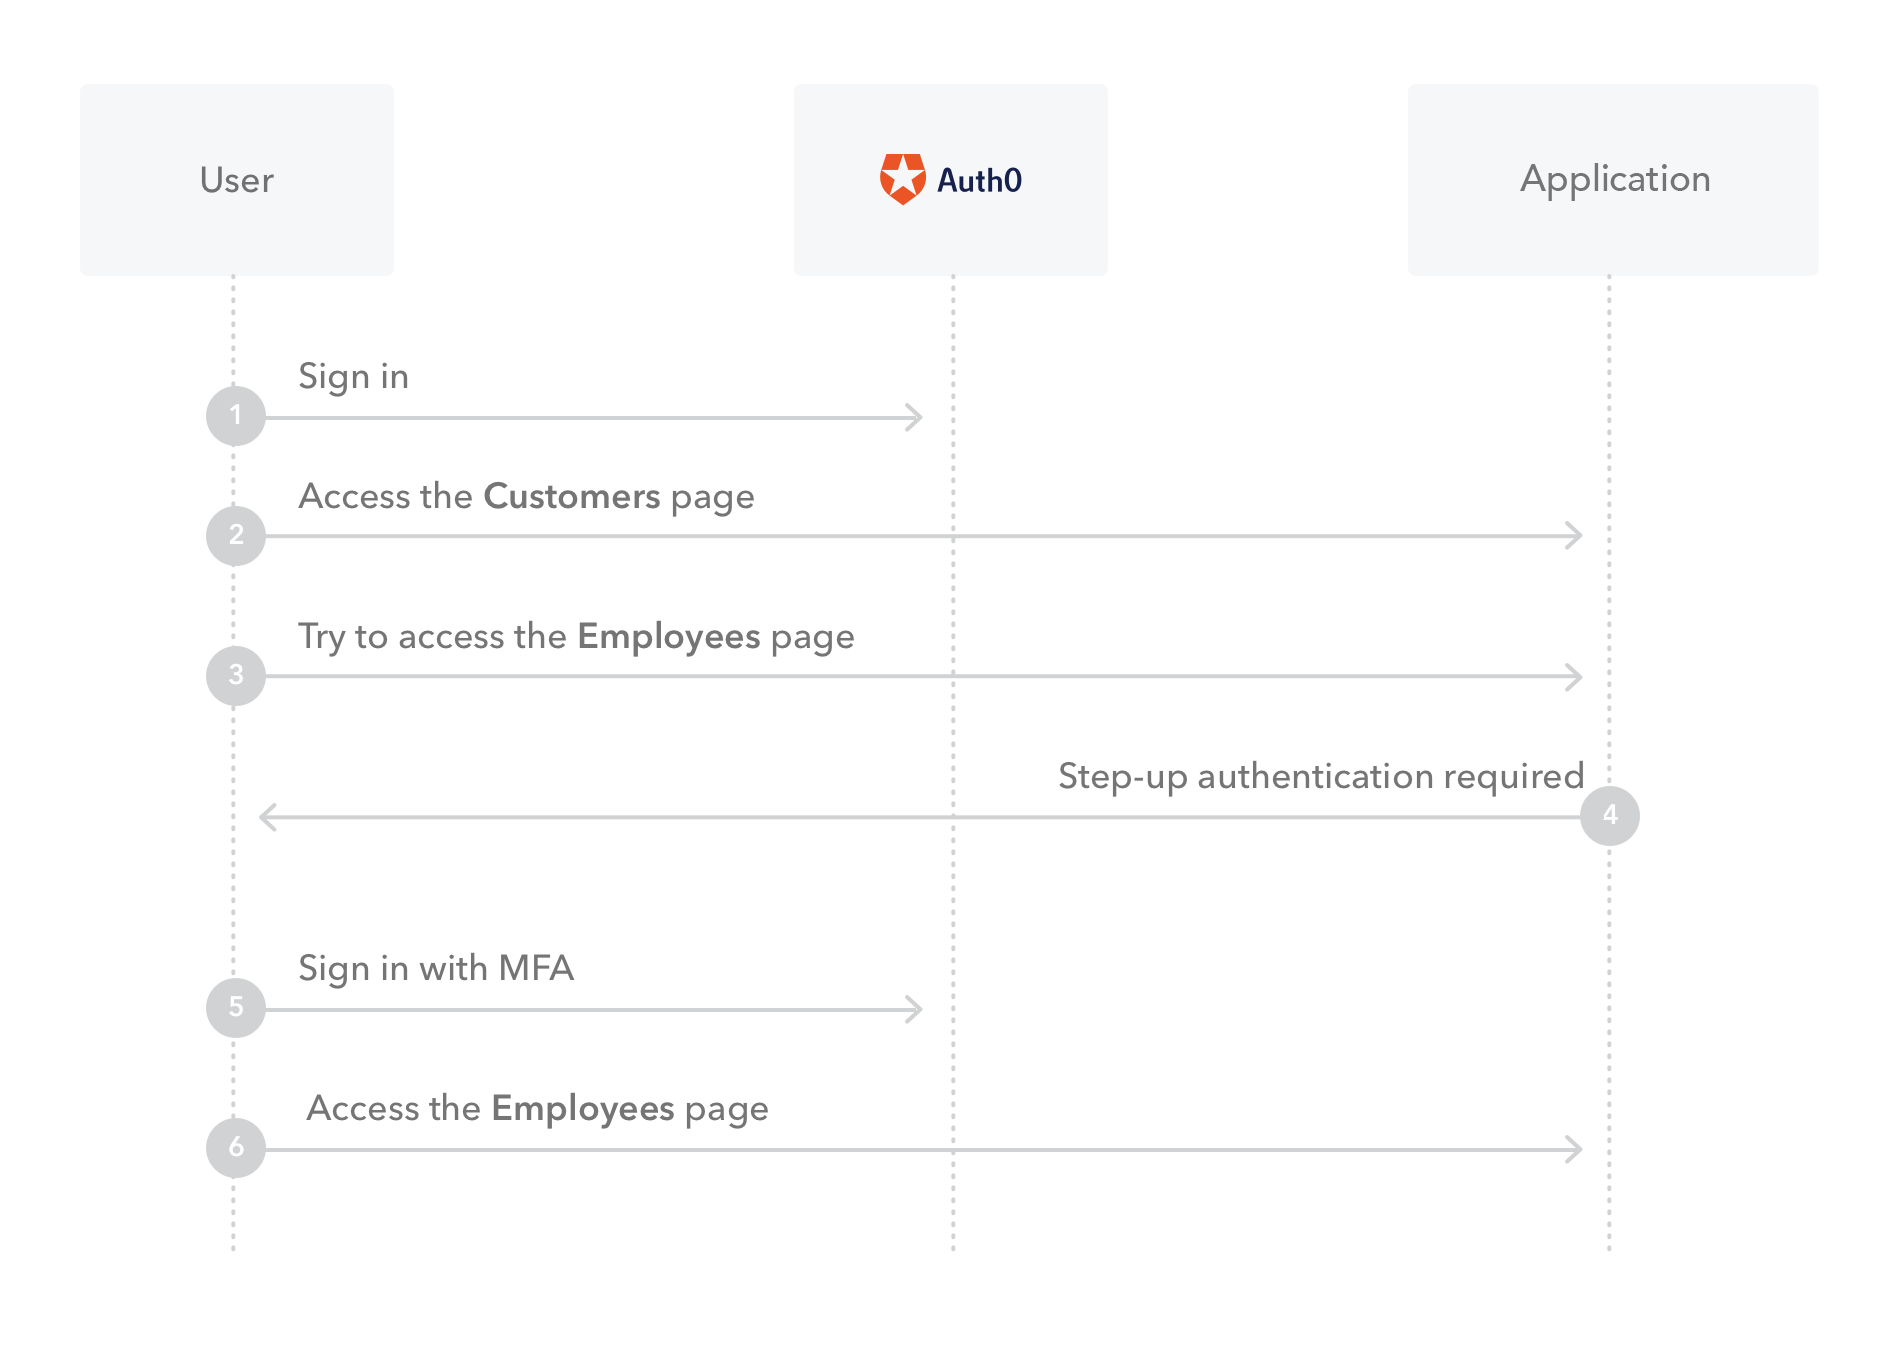 Auth0 step-up authentication